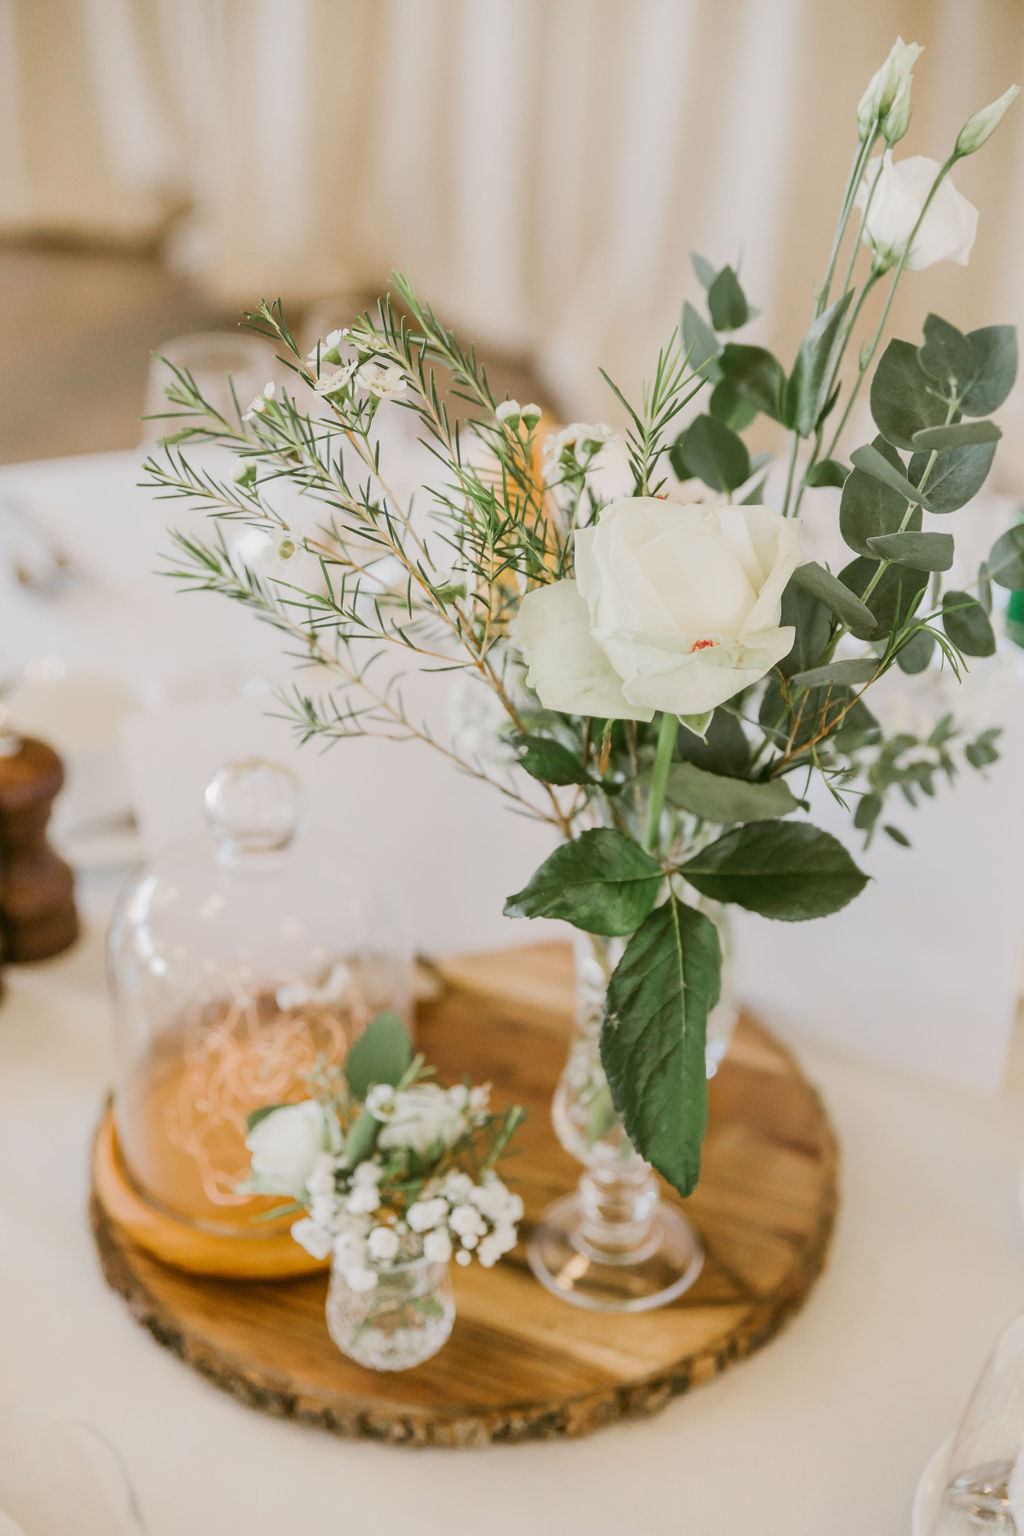 Simple green wedding table setting wit wooden slabs